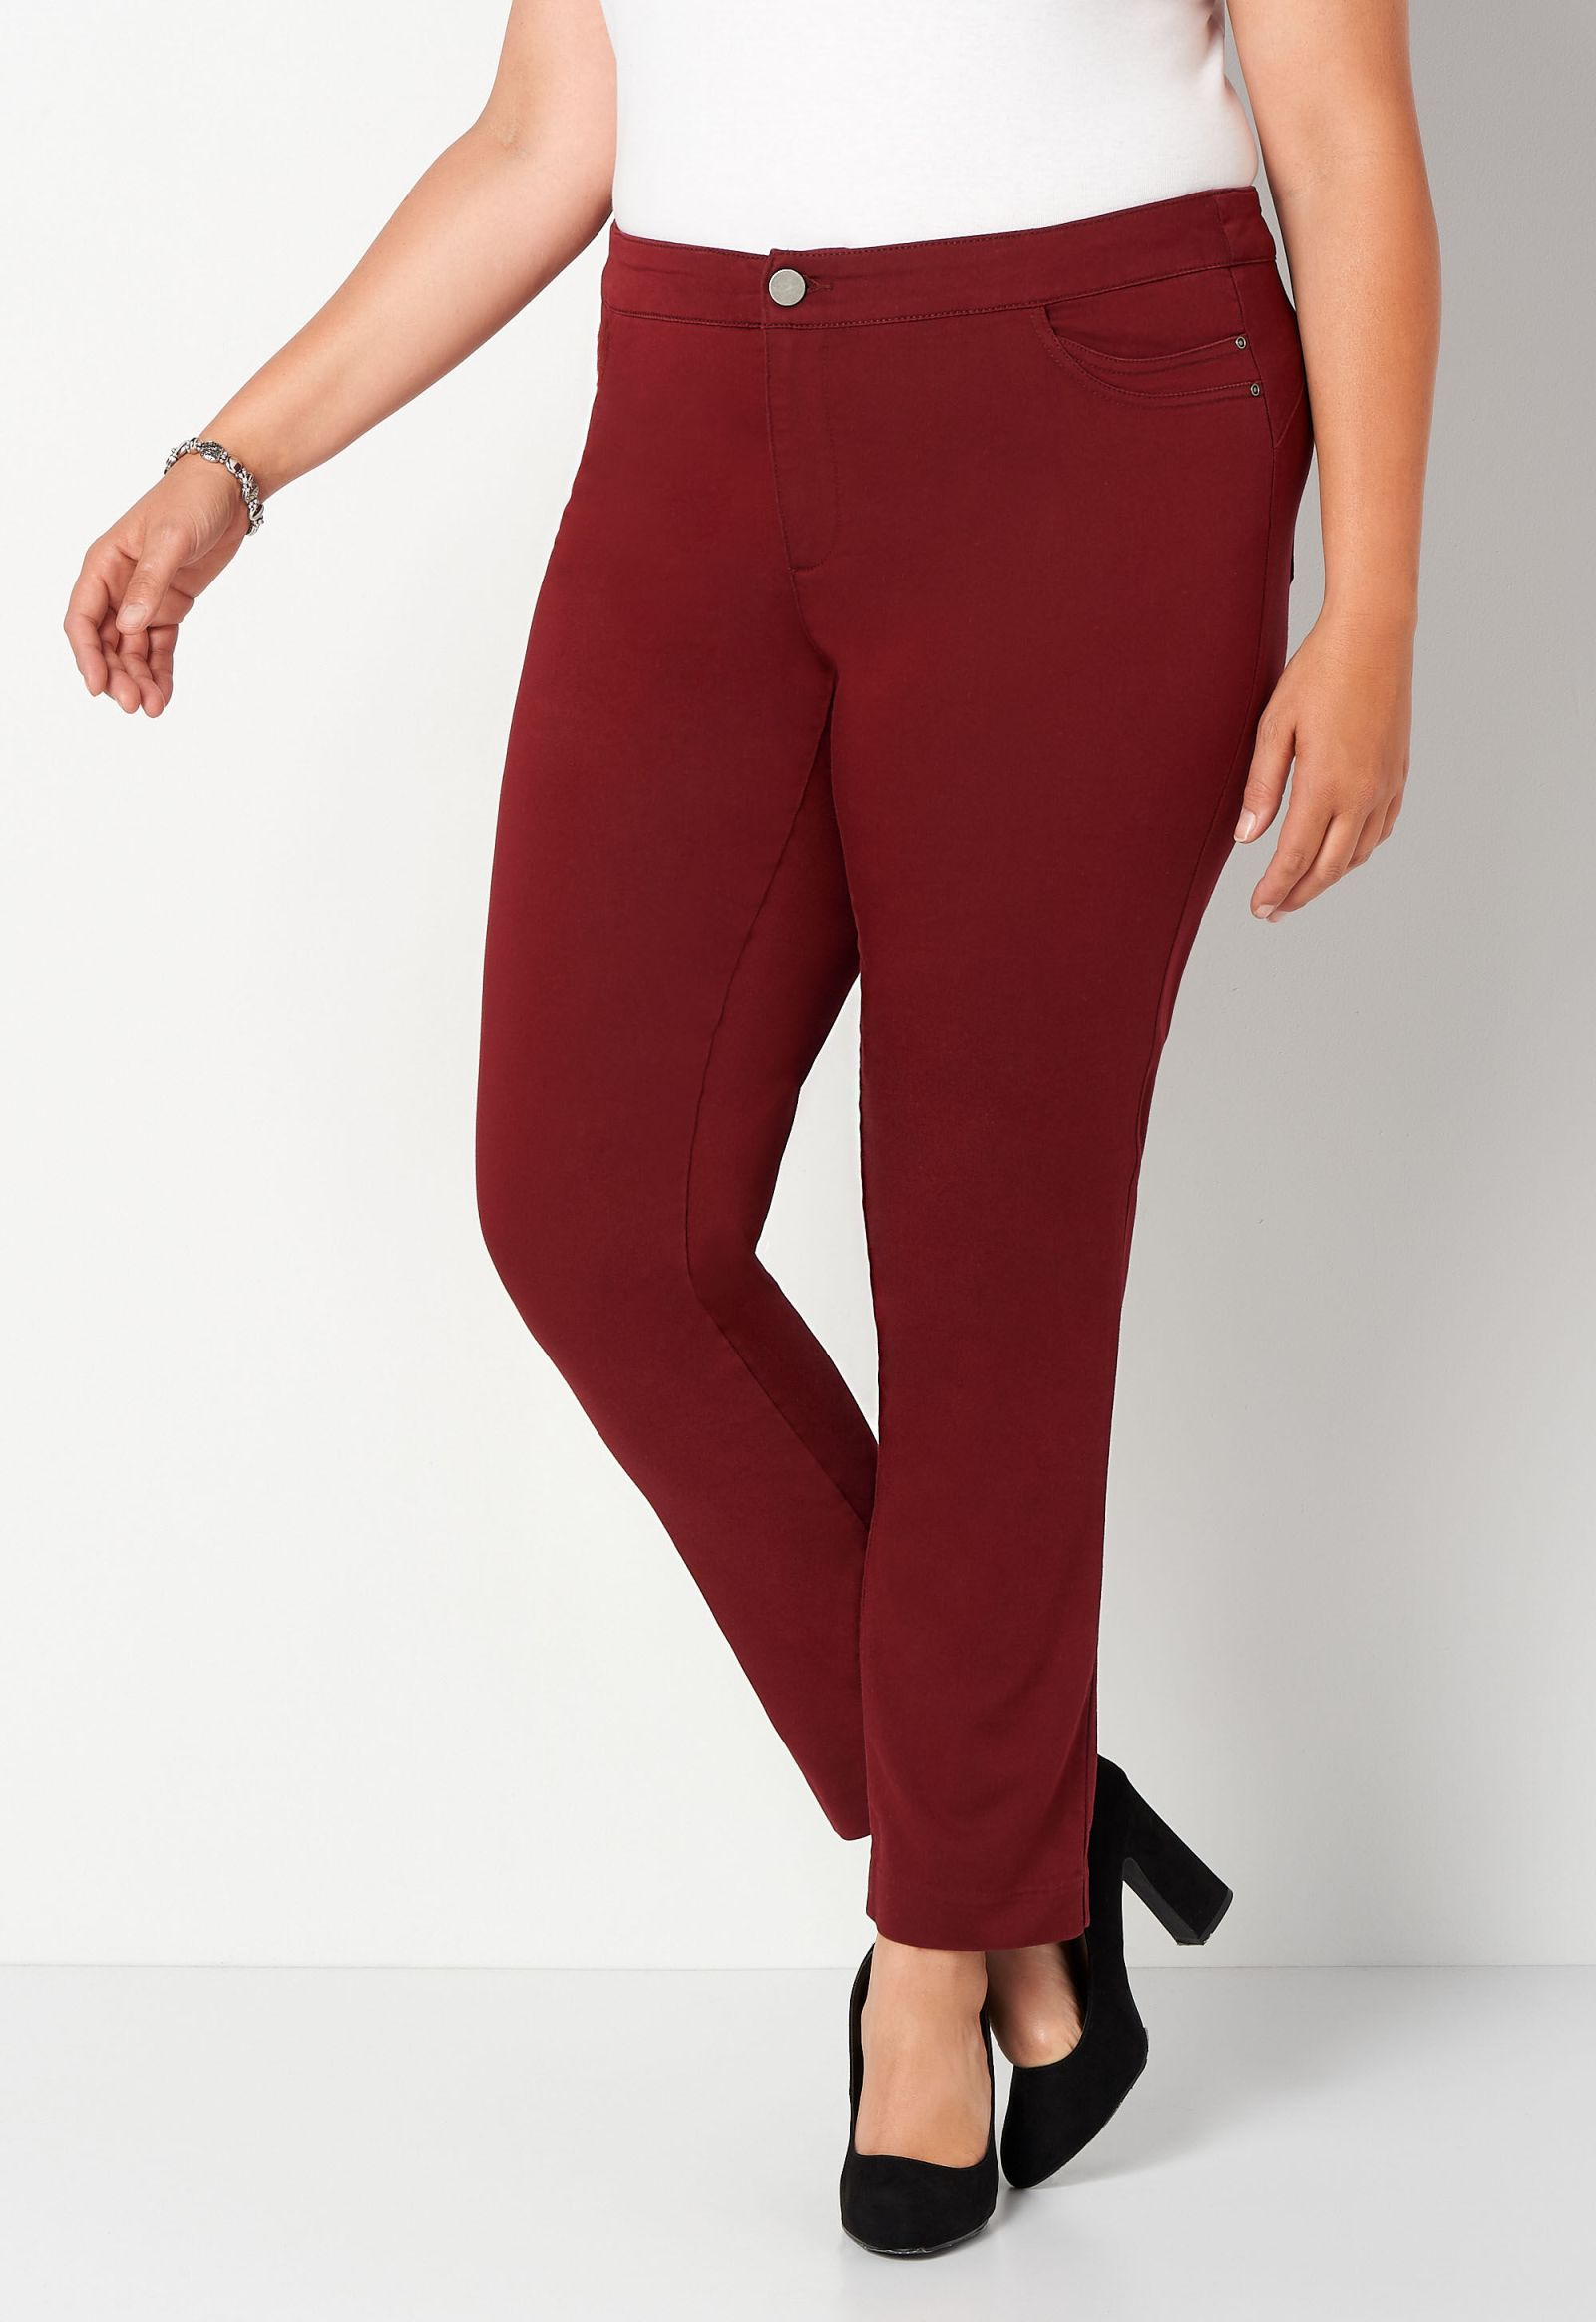 Super Stretch Tapered Plus Size Pant Average Shaped Fit 2